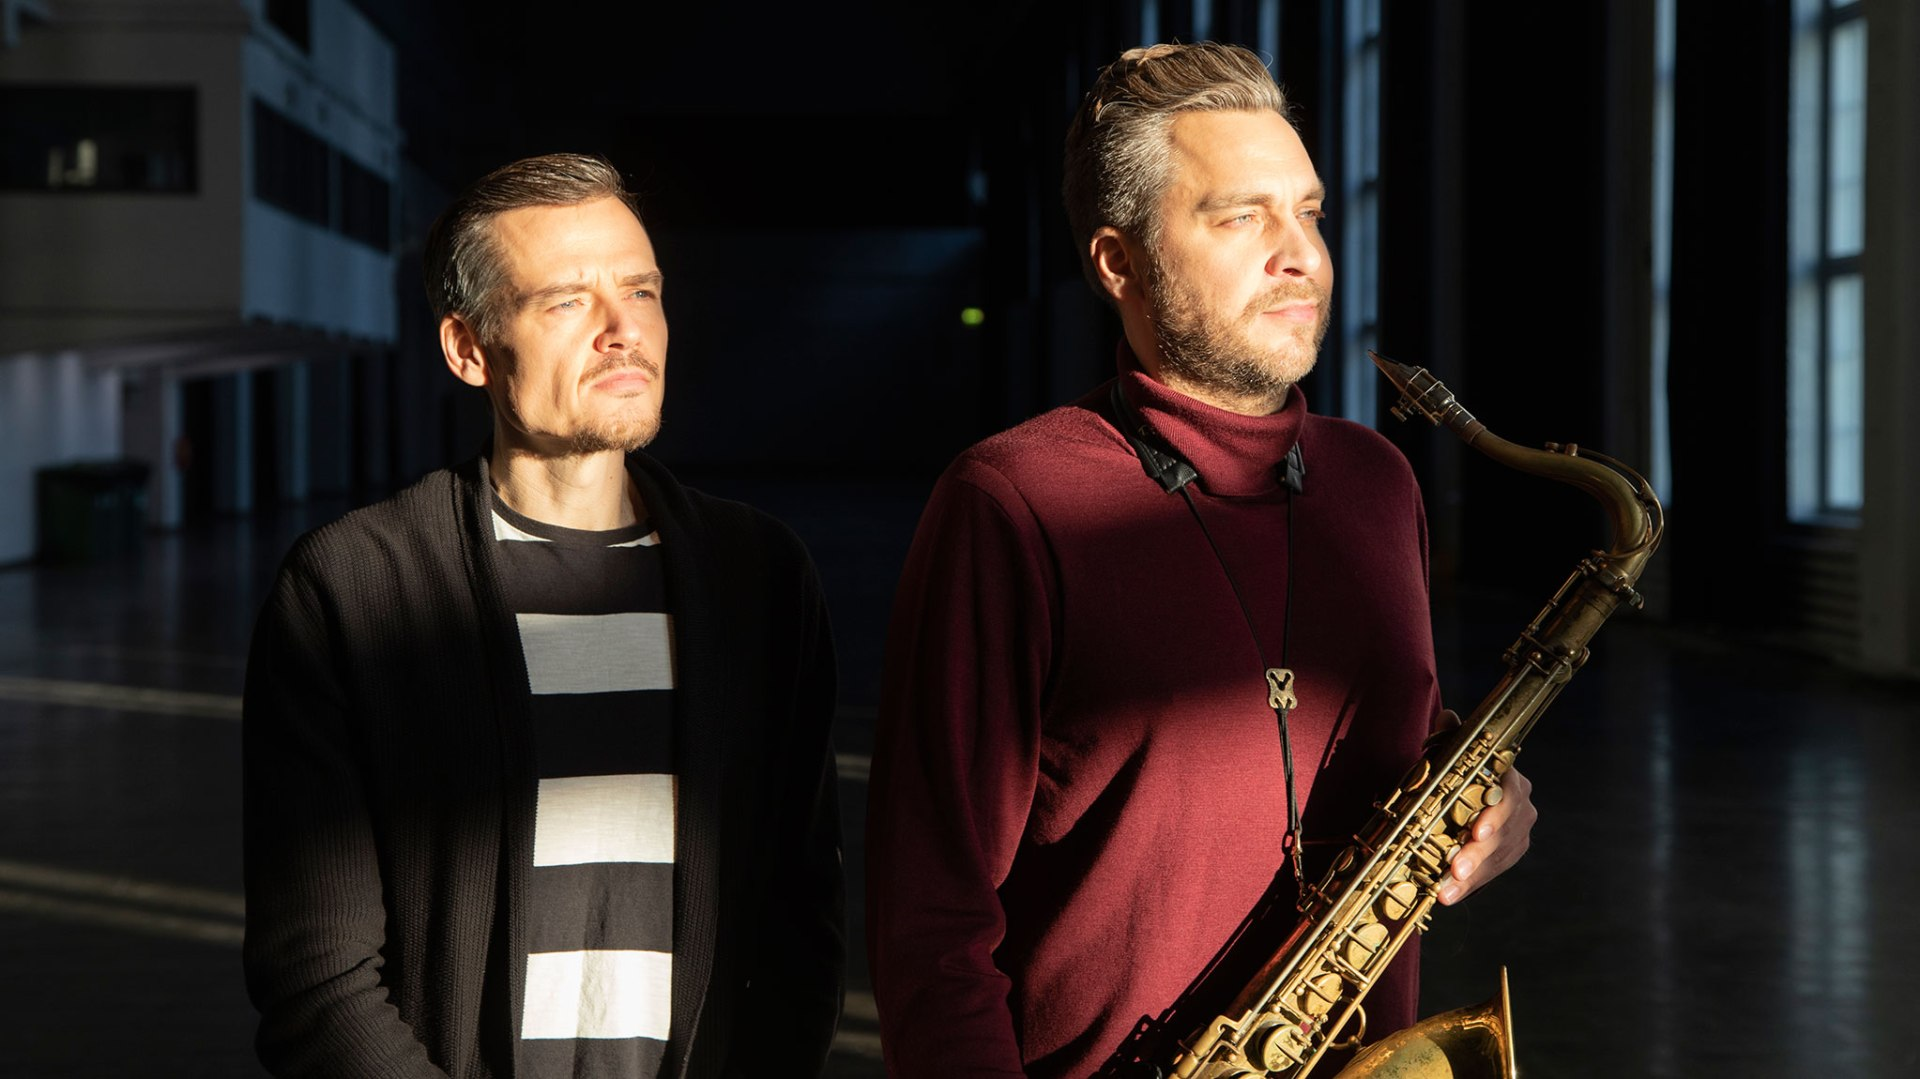 Timo Lassy and Teppo Mäkynen share self-titled album.